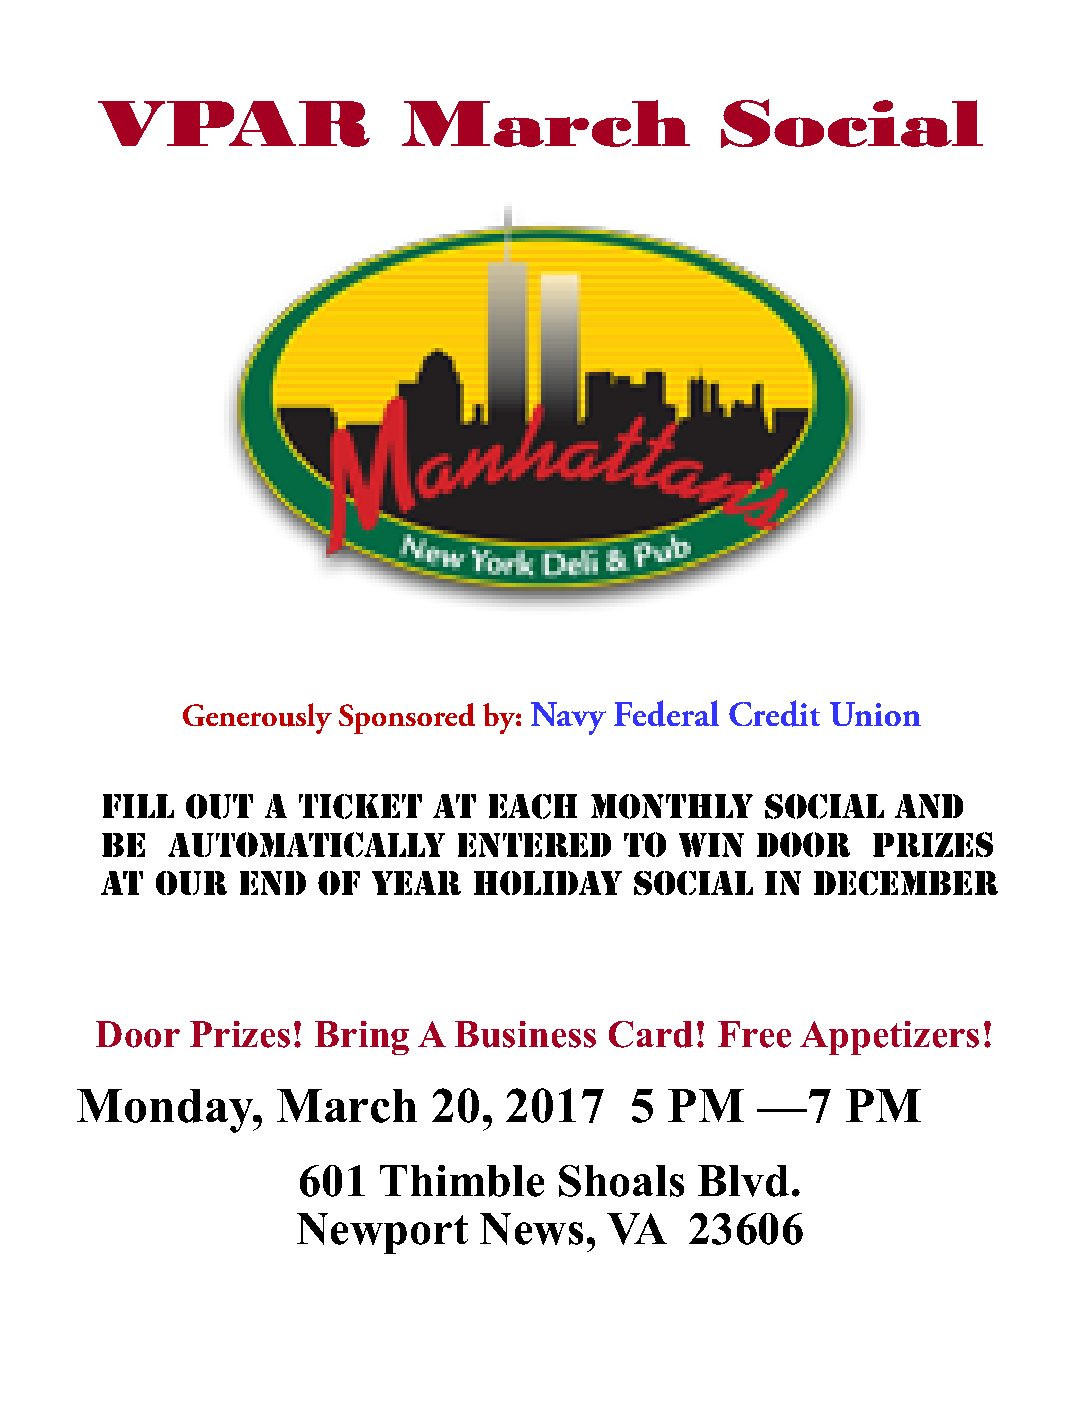 VPAR MARCH SOCIAL AT MANHATTANS & SPONSORED BY NAVY FEDERAL – JOIN US MONDAY, MARCH 20TH!